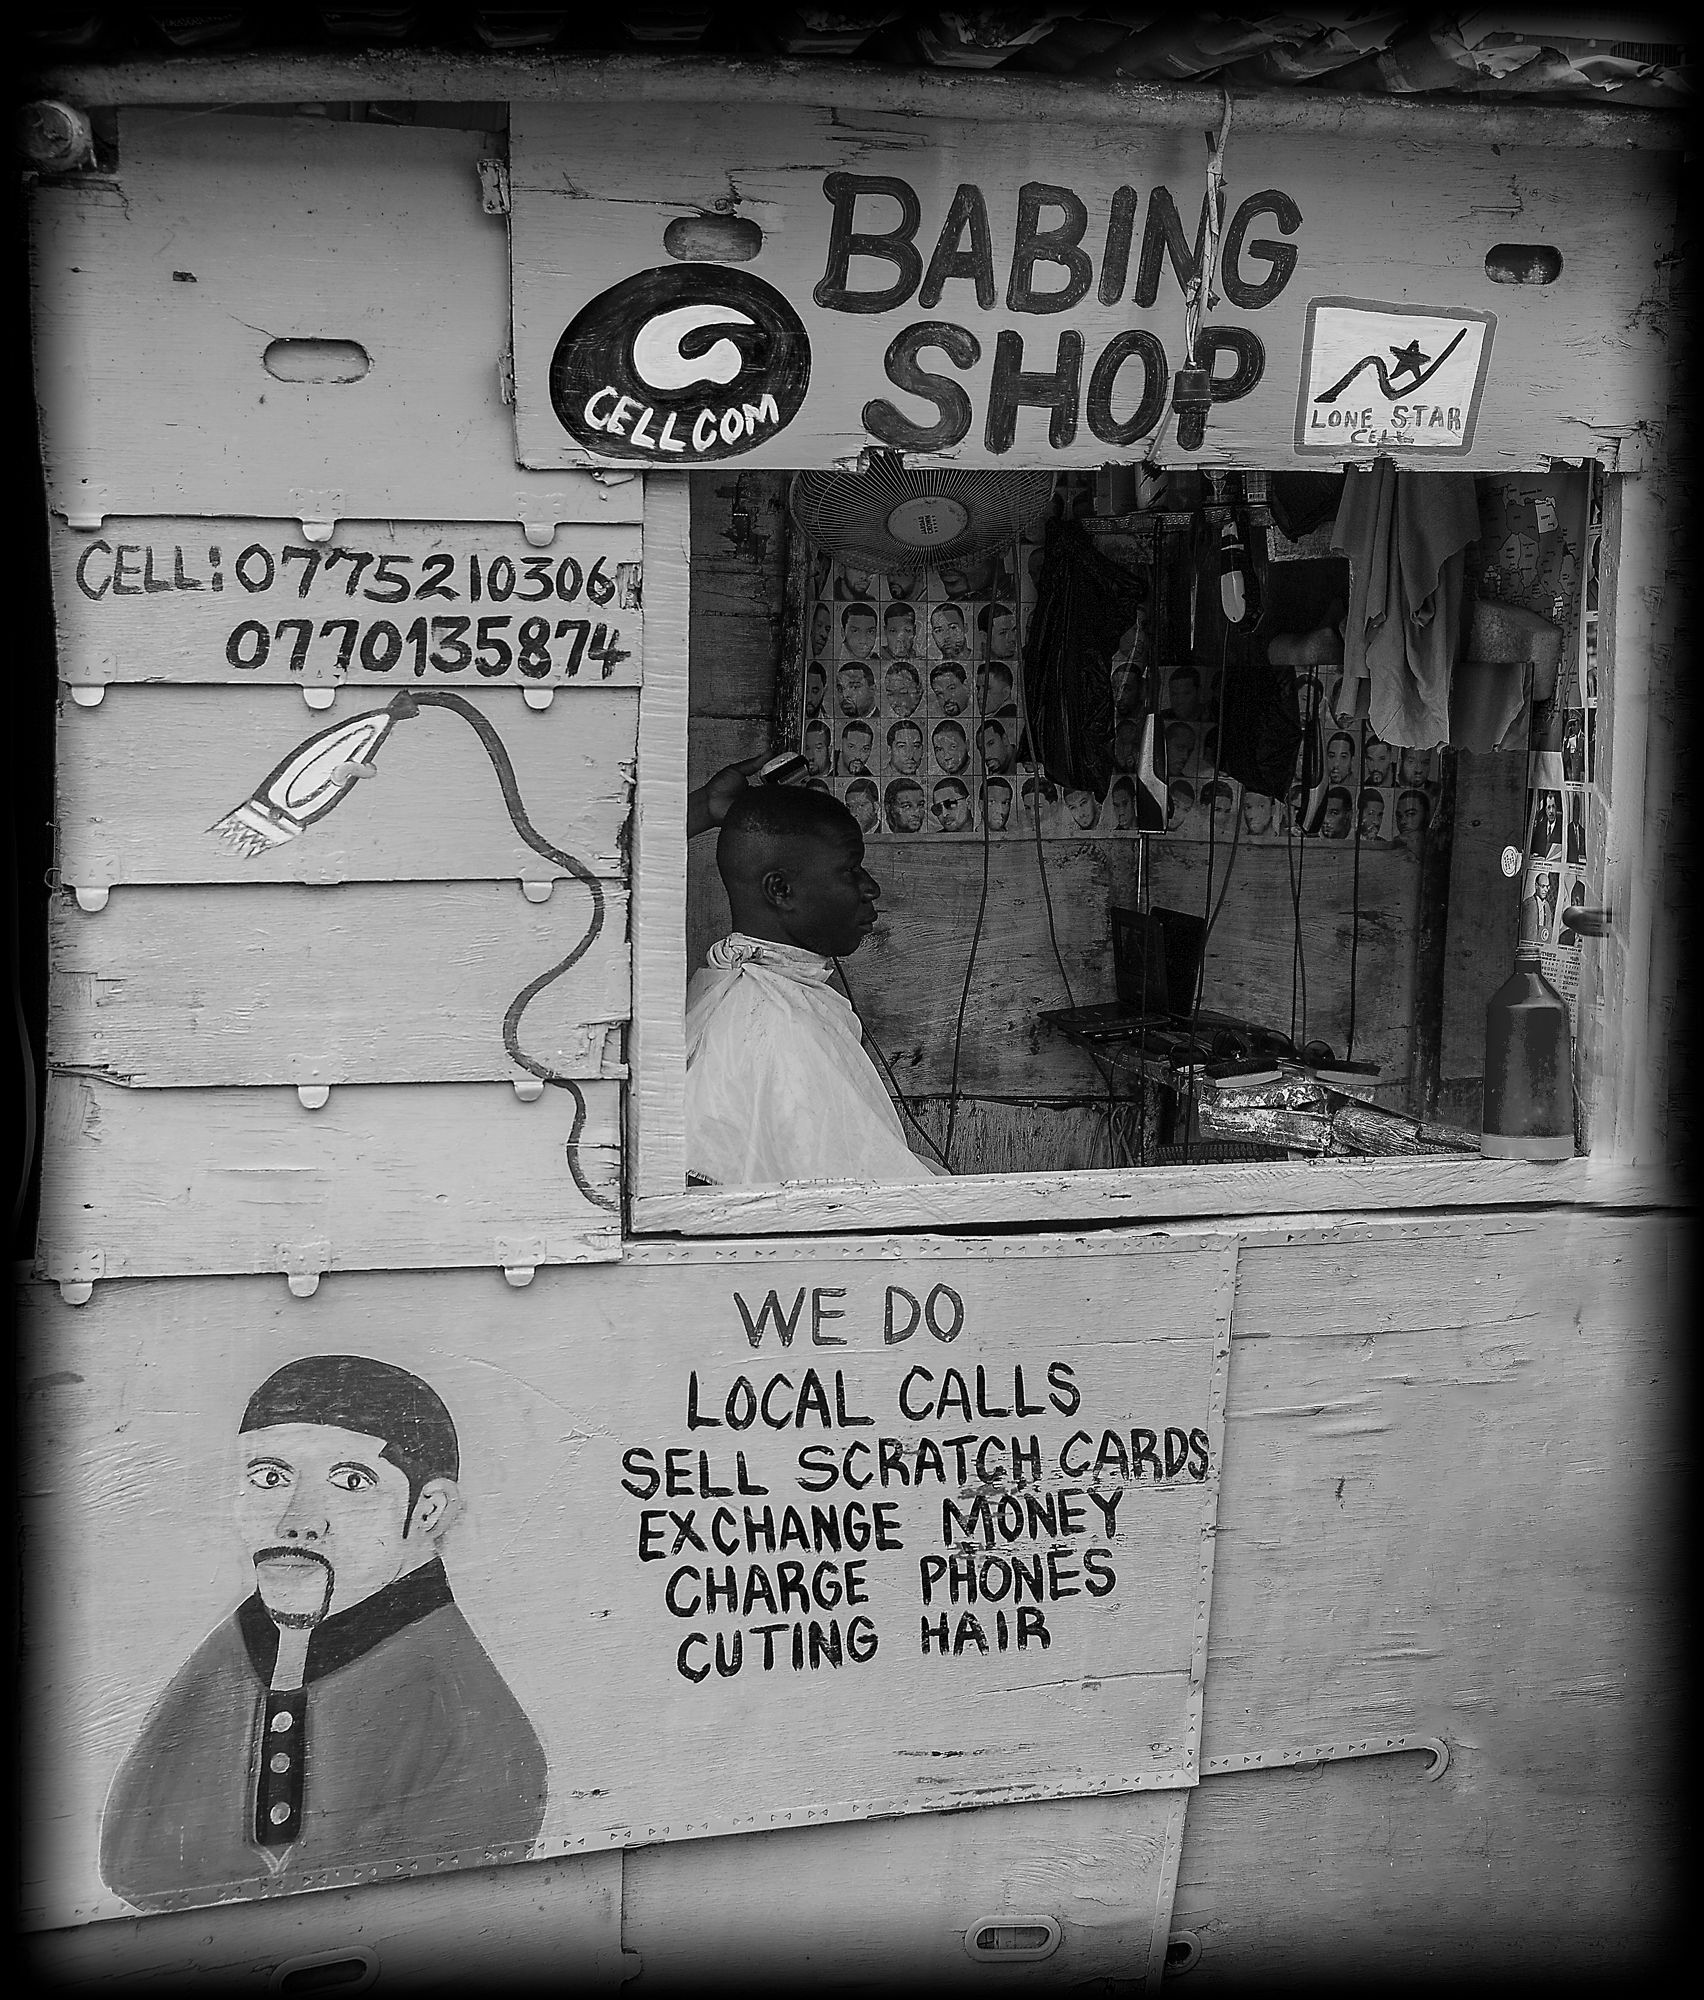 The Babing Shop